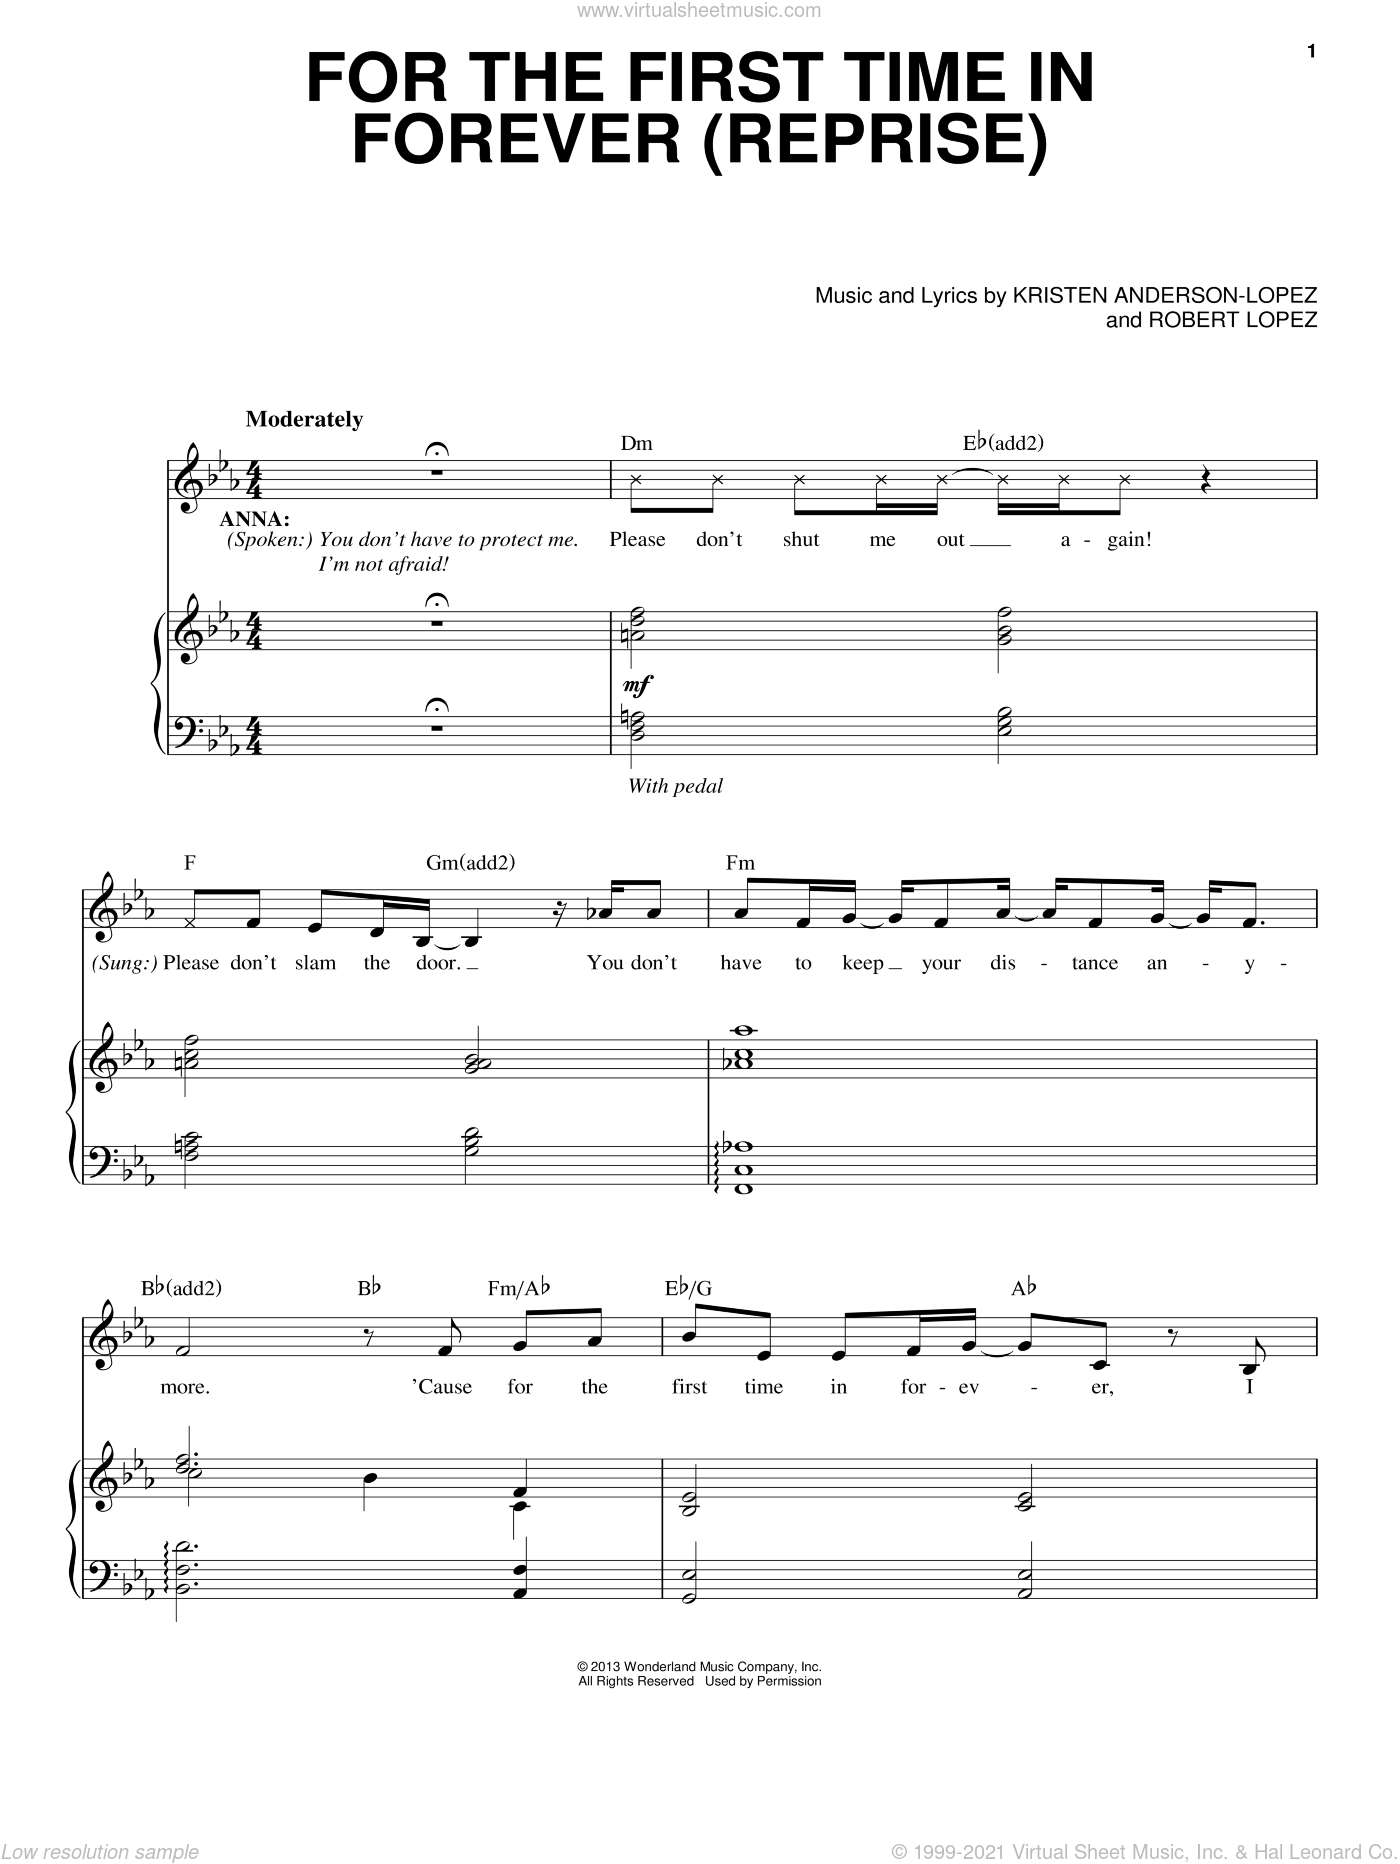 For The First Time In Forever (Reprise) sheet music for voice and piano by Robert Lopez and Kristen Anderson-Lopez. Score Image Preview.